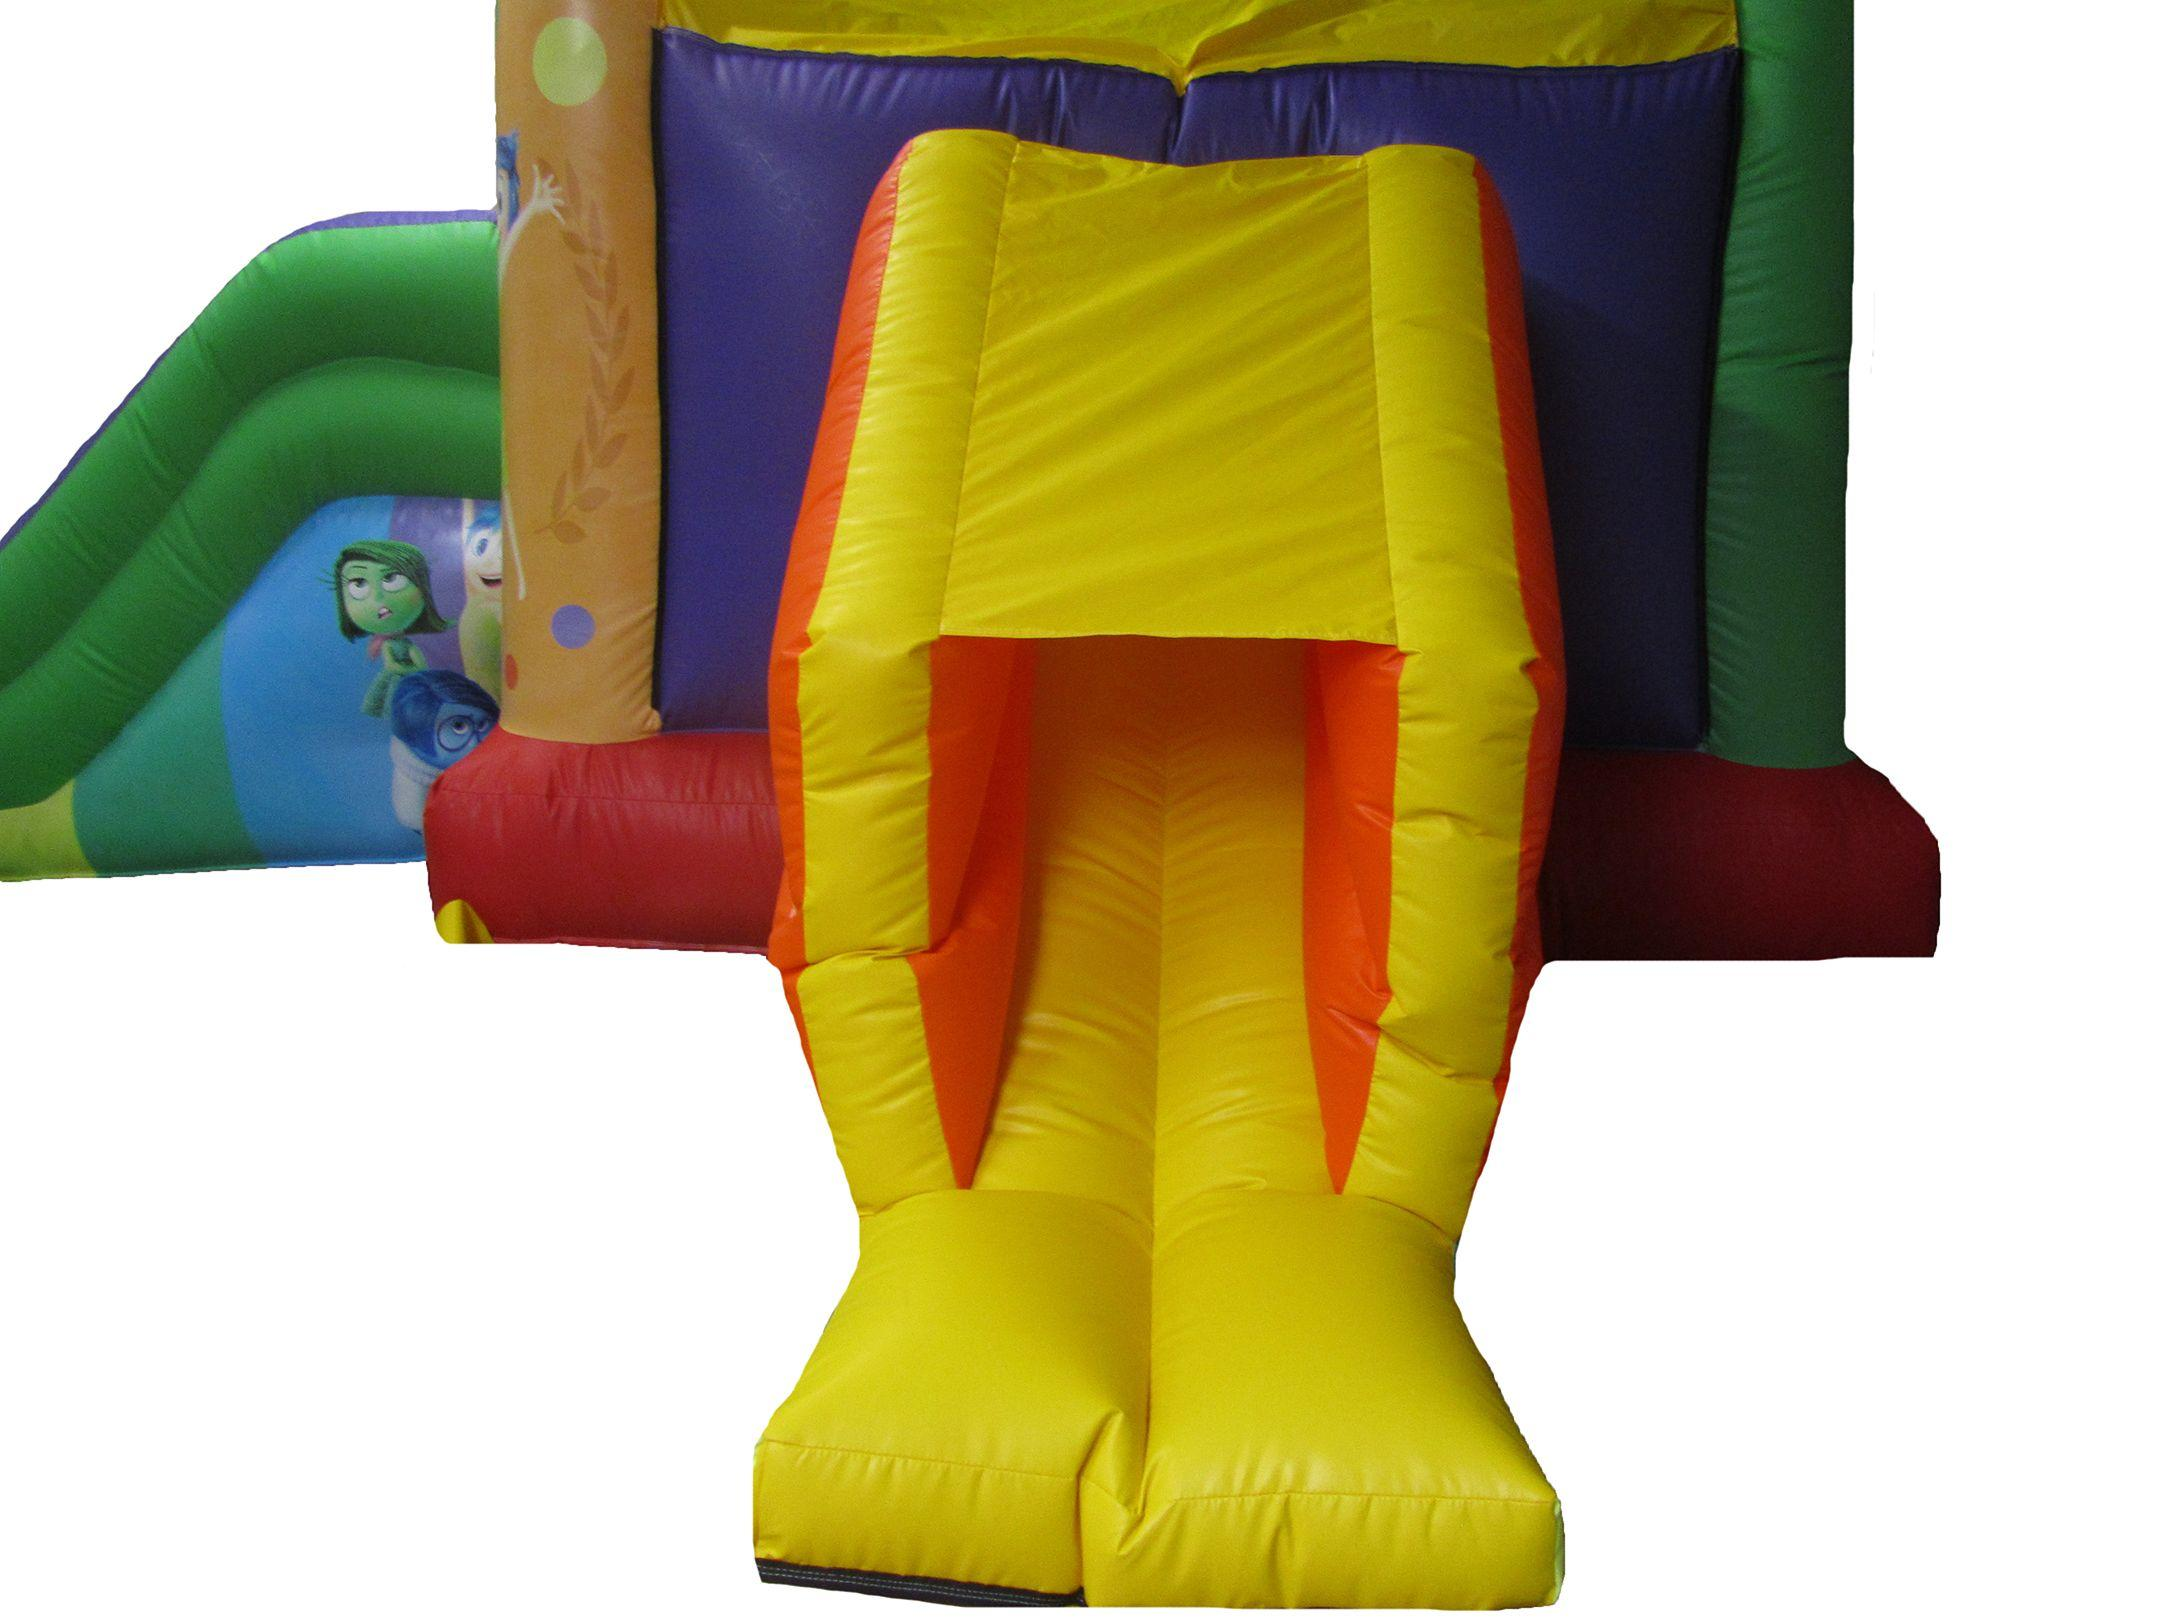 Commercial Bouncy Slide